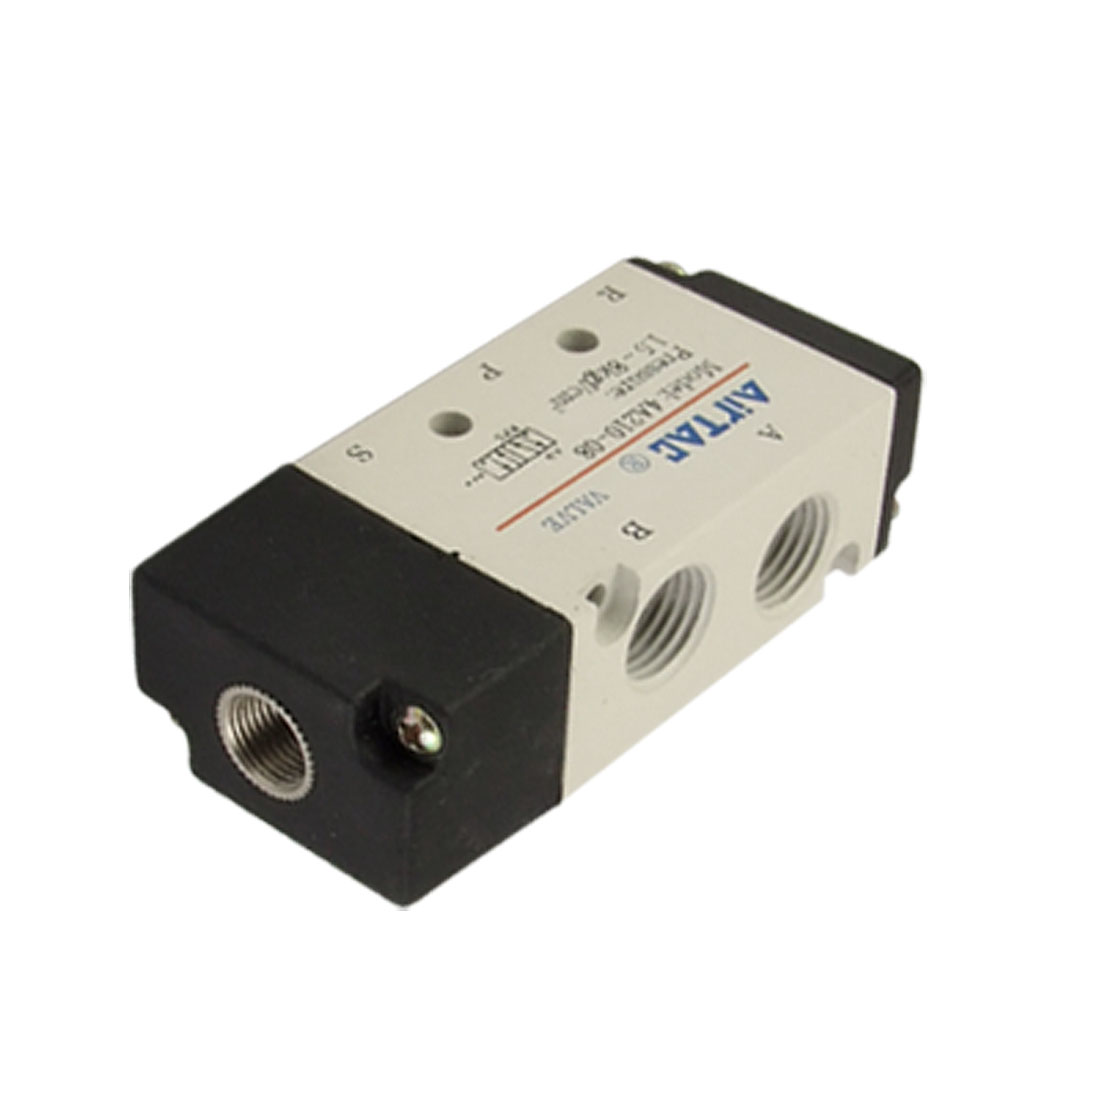 4A210-08 2 Position 5 Way Pneumatic Control Solenoid Valve